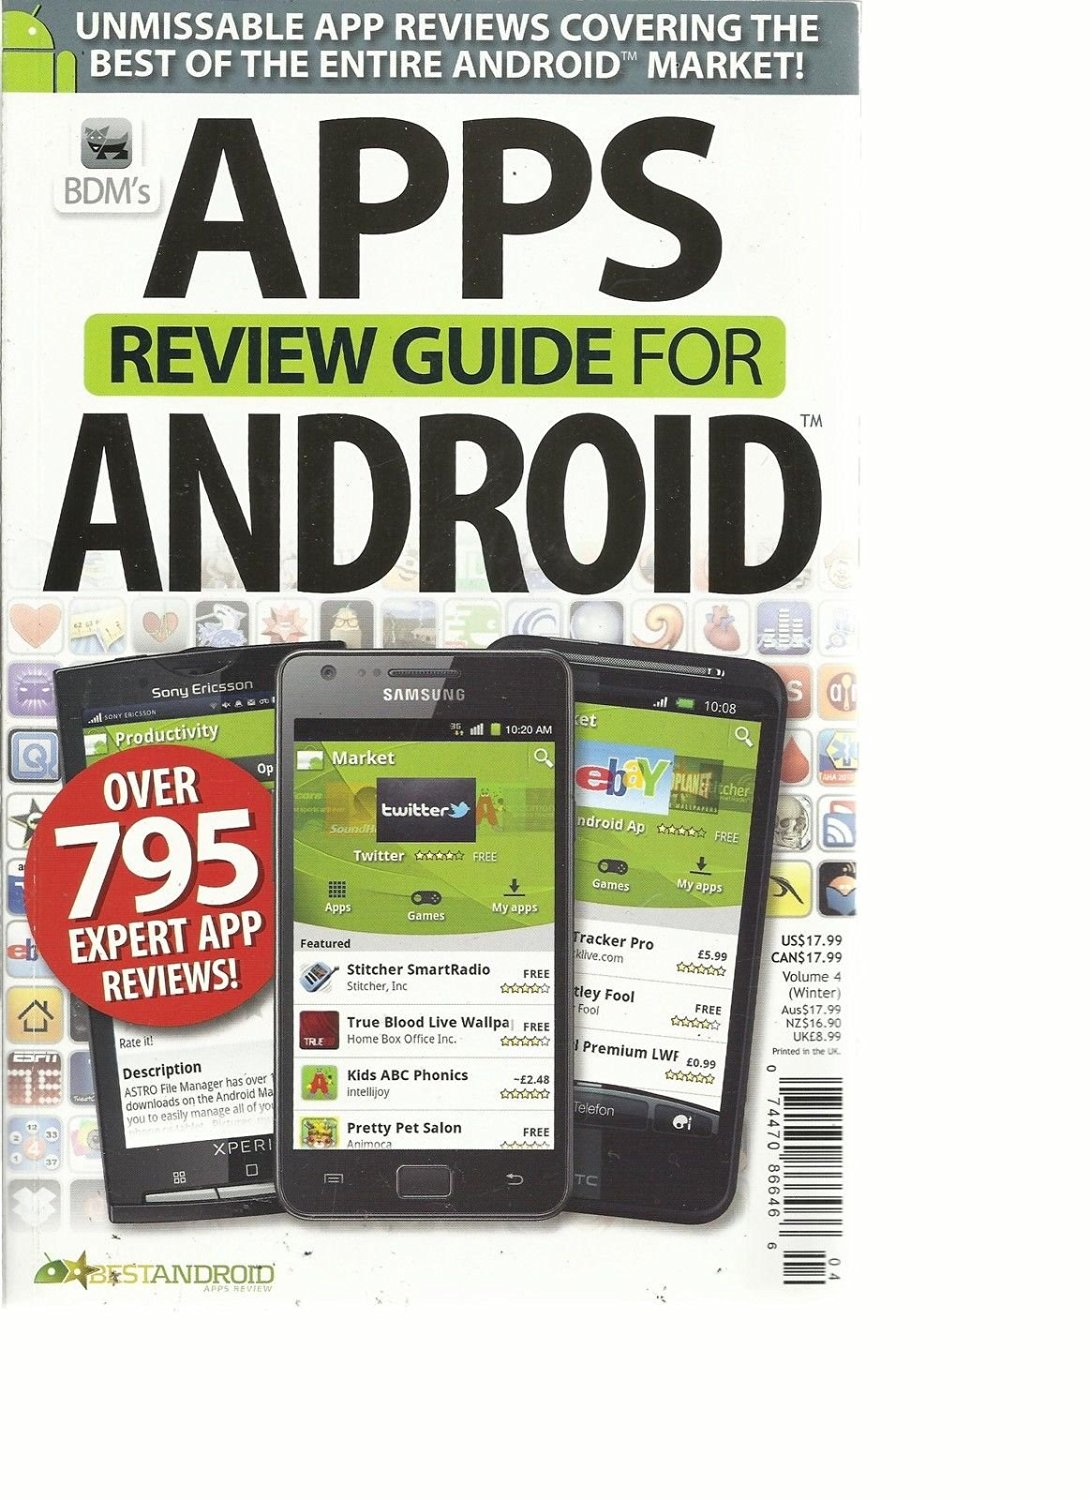 BDM'S APPS REVIEW GUIDE FOR ANDROID, VOLUME, 4 ( OVER 795 EXPERT APP REVIEWS ! )